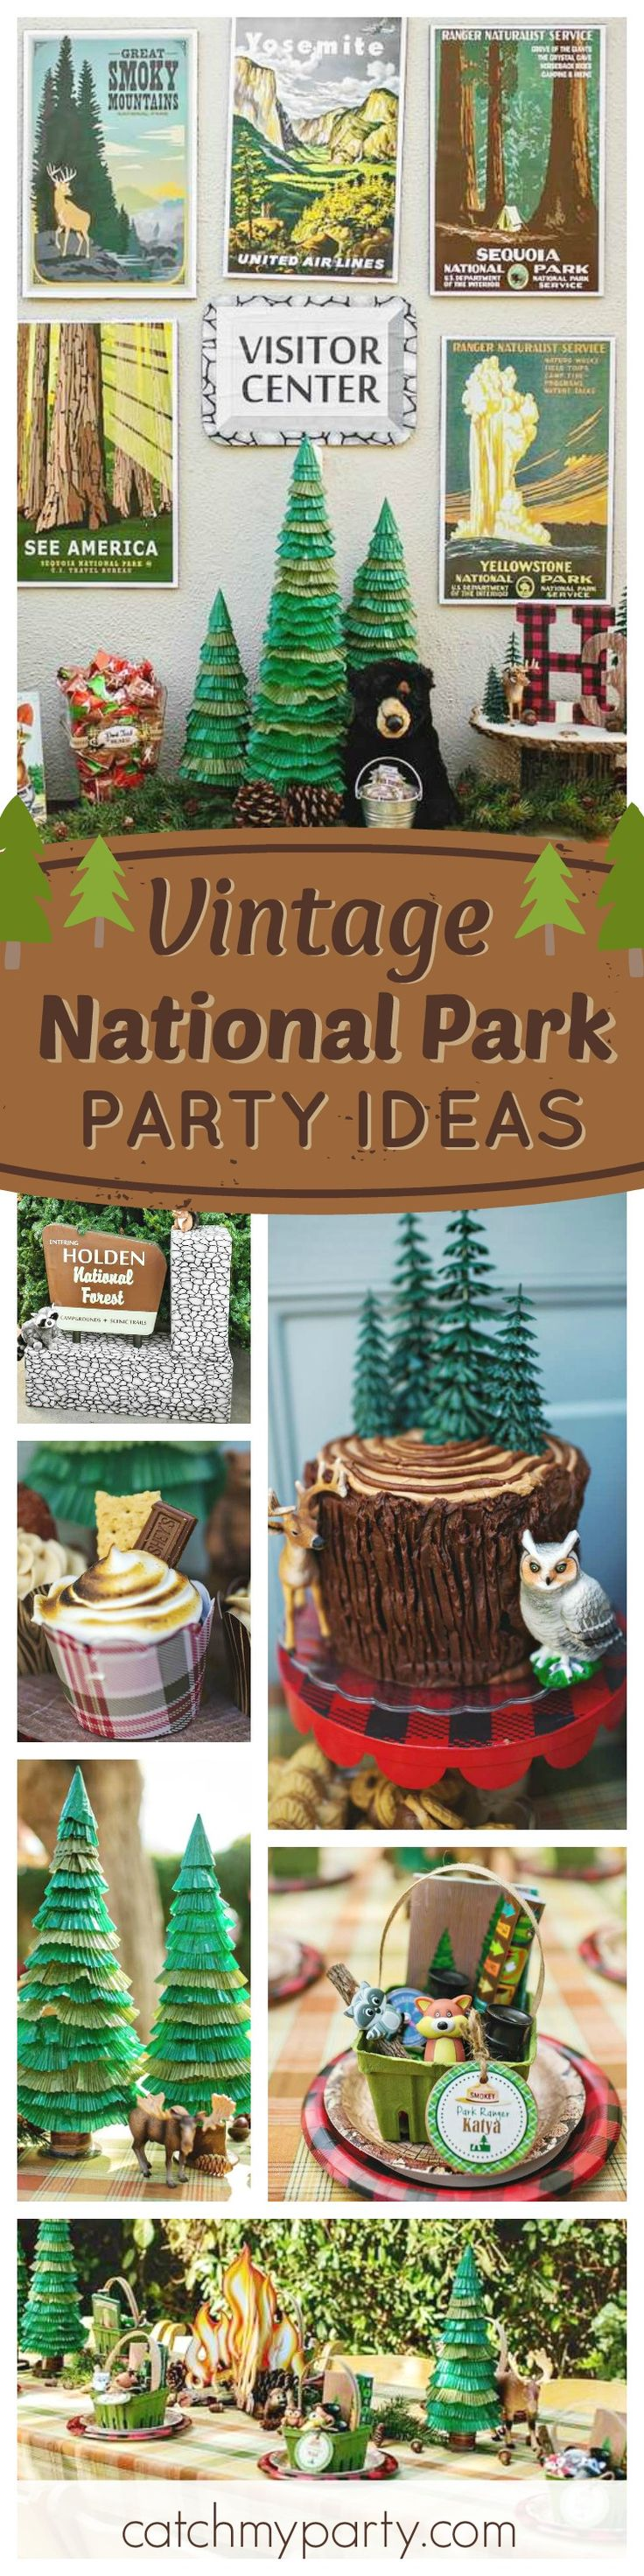 52 best images about Bday Ideas - Camping Party on Pinterest ...